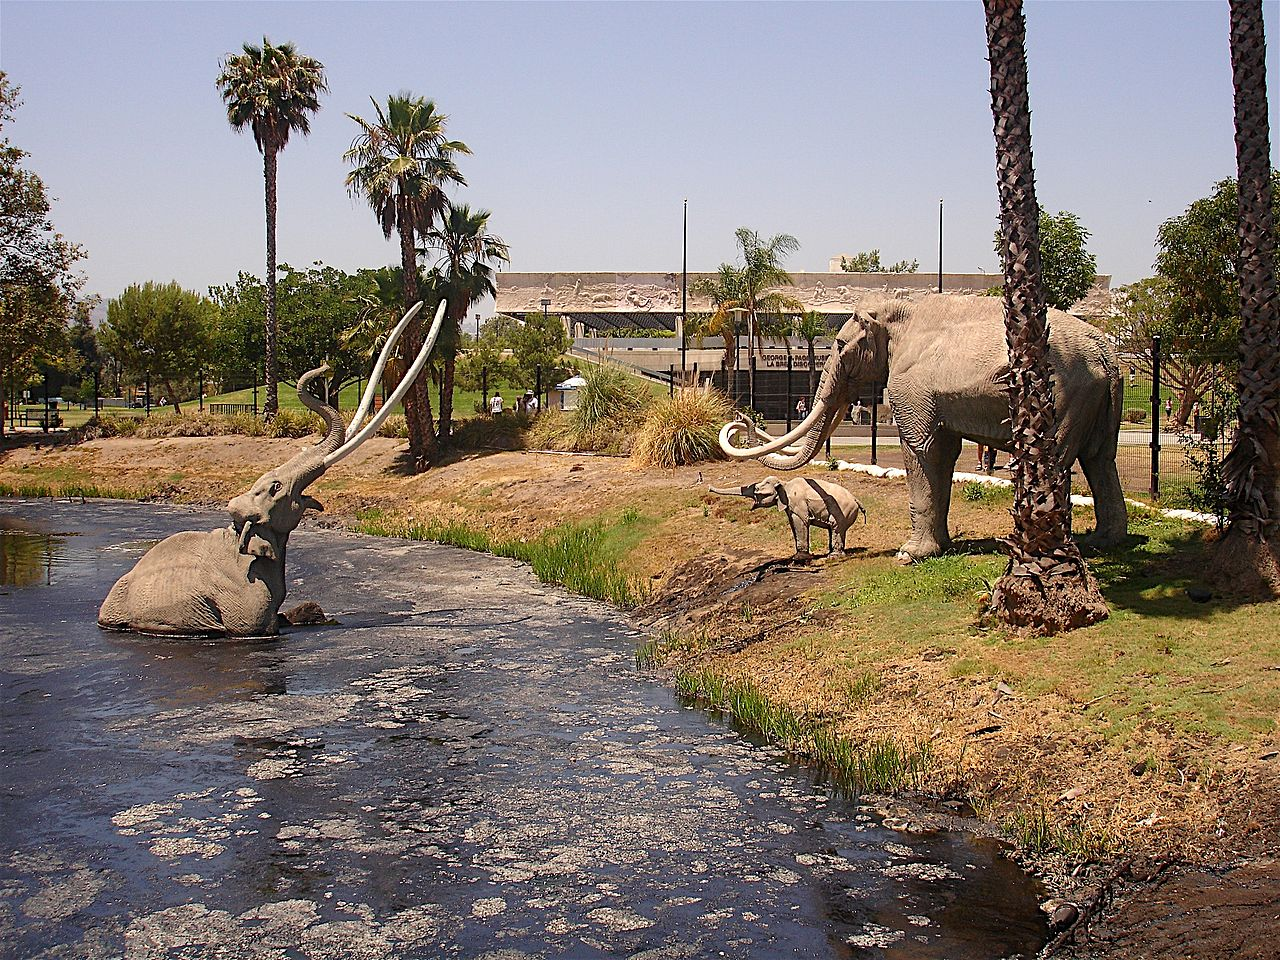 La Brea Tar Pits, Los Angeles, USA. Discover the top natural attractions near Los Angeles, USA